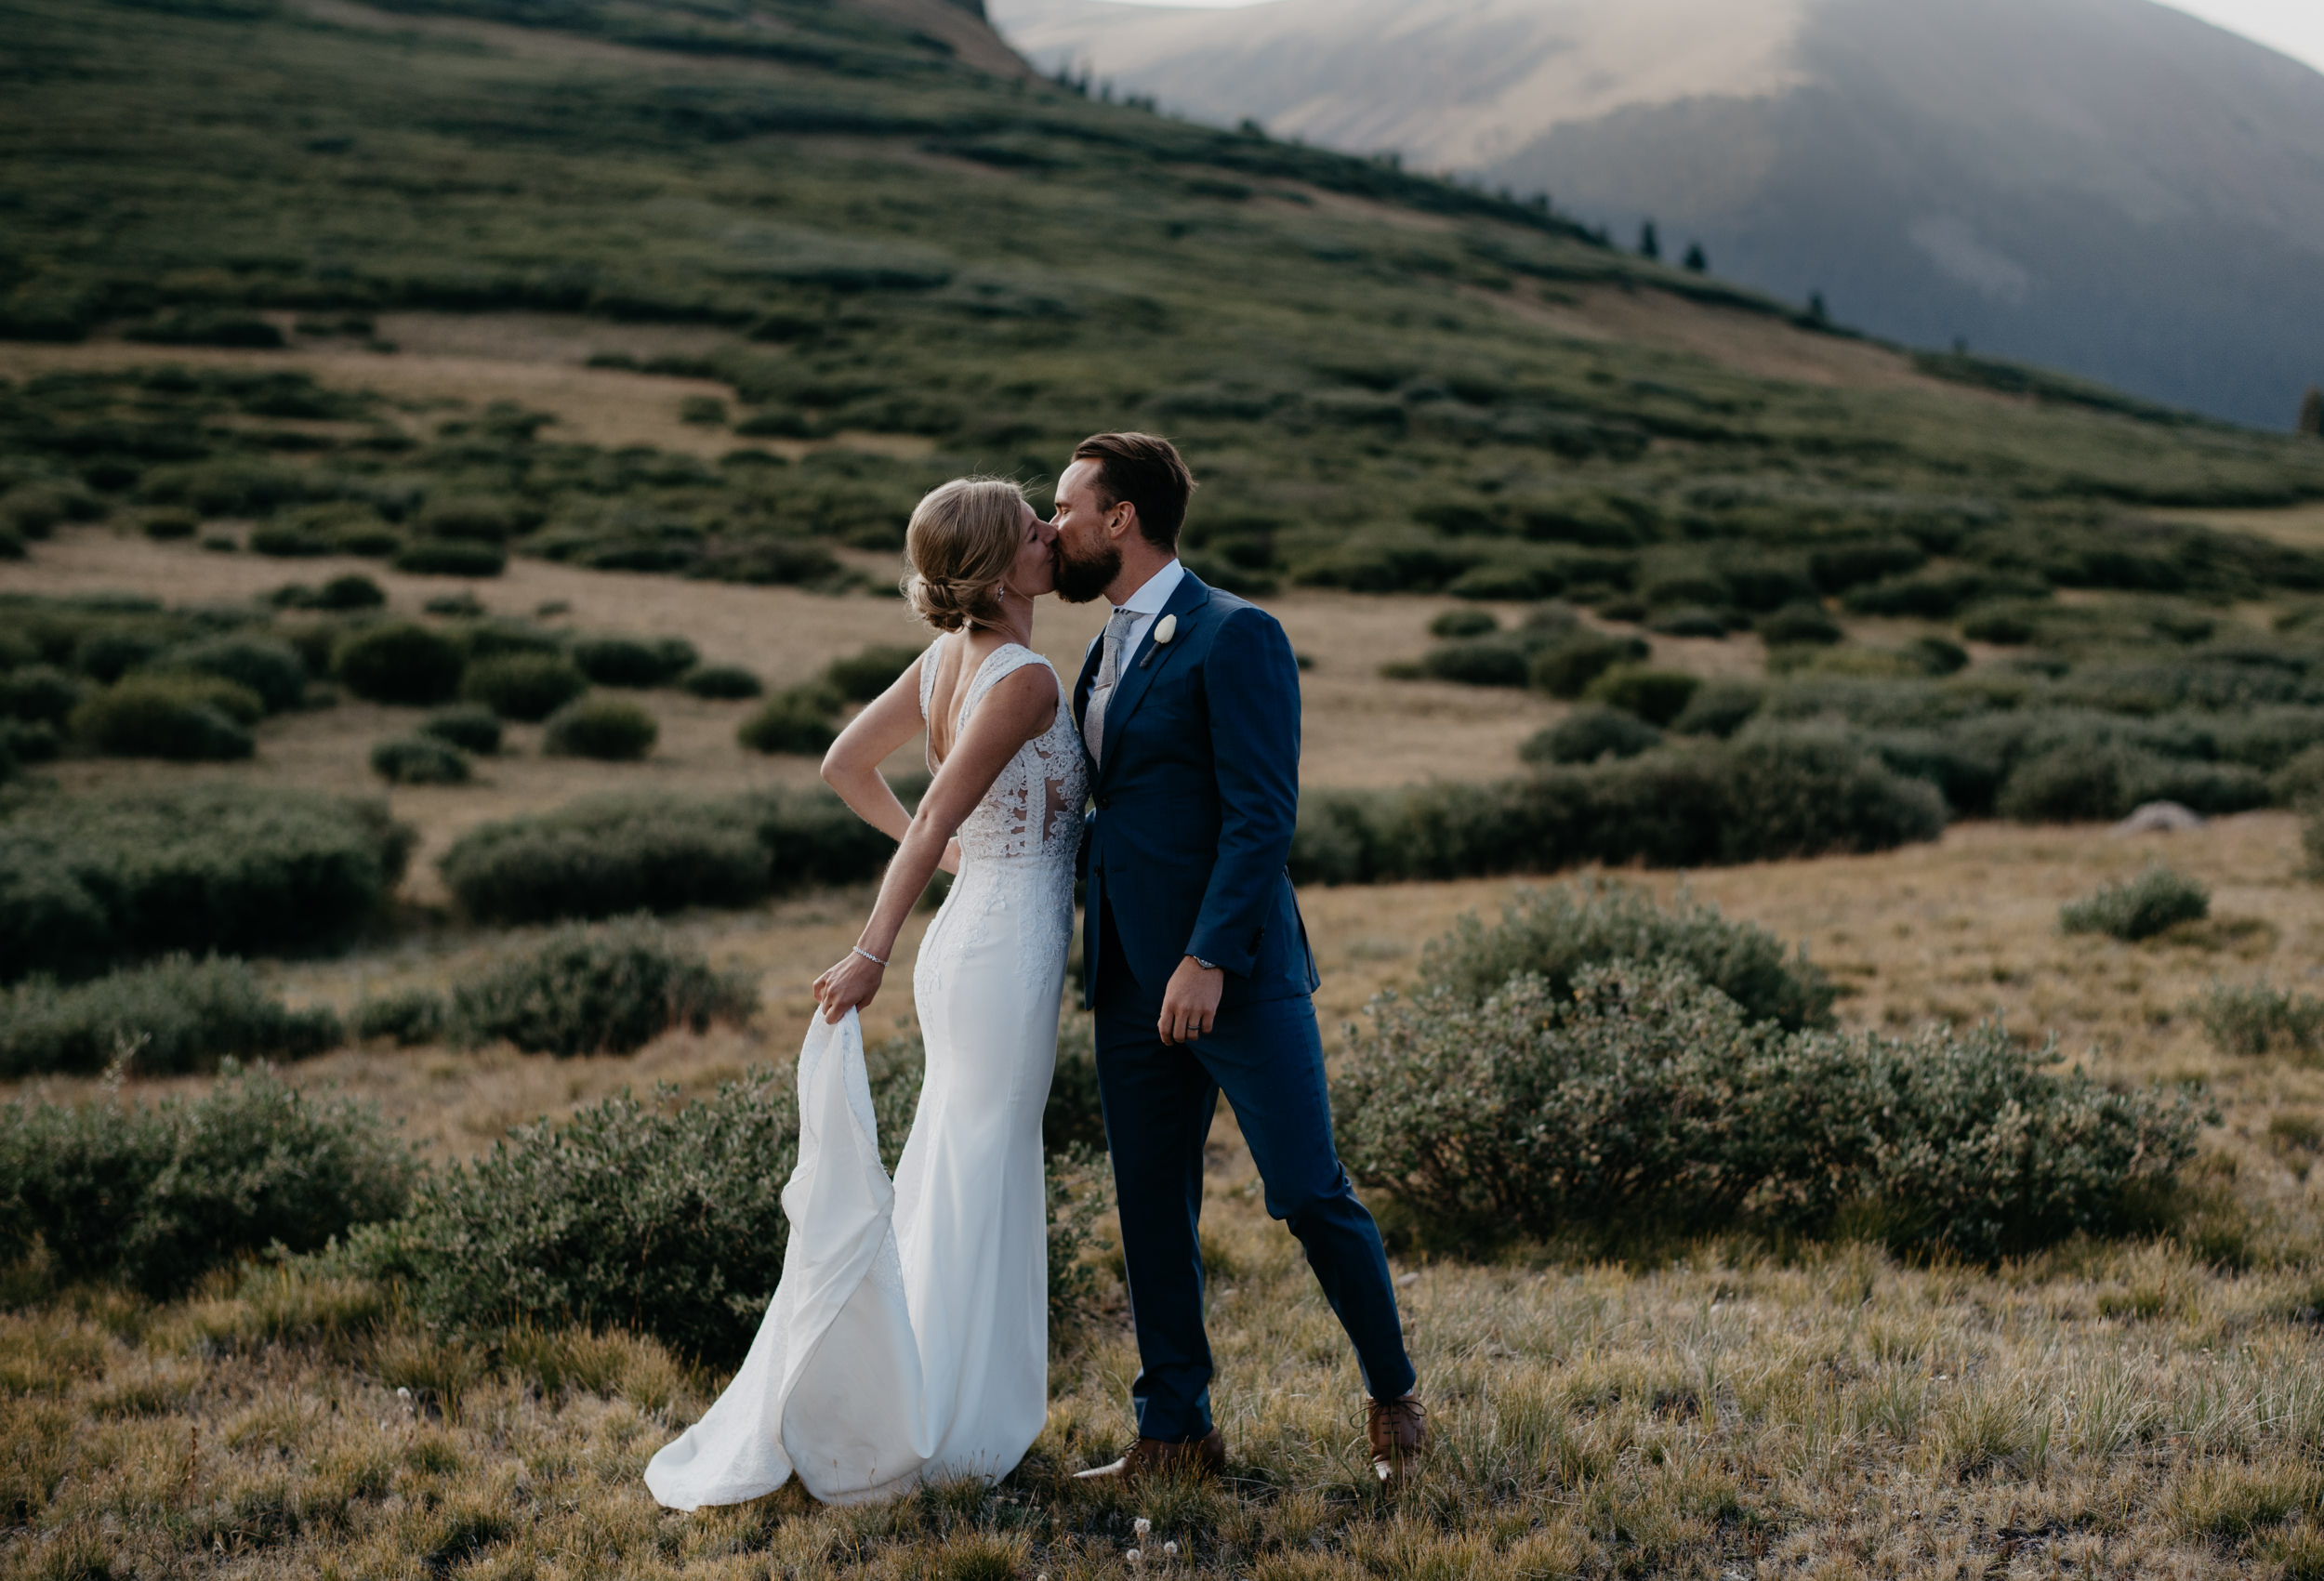 Bride and groom portraits at an elopement at Guanella Pass in Colorado.